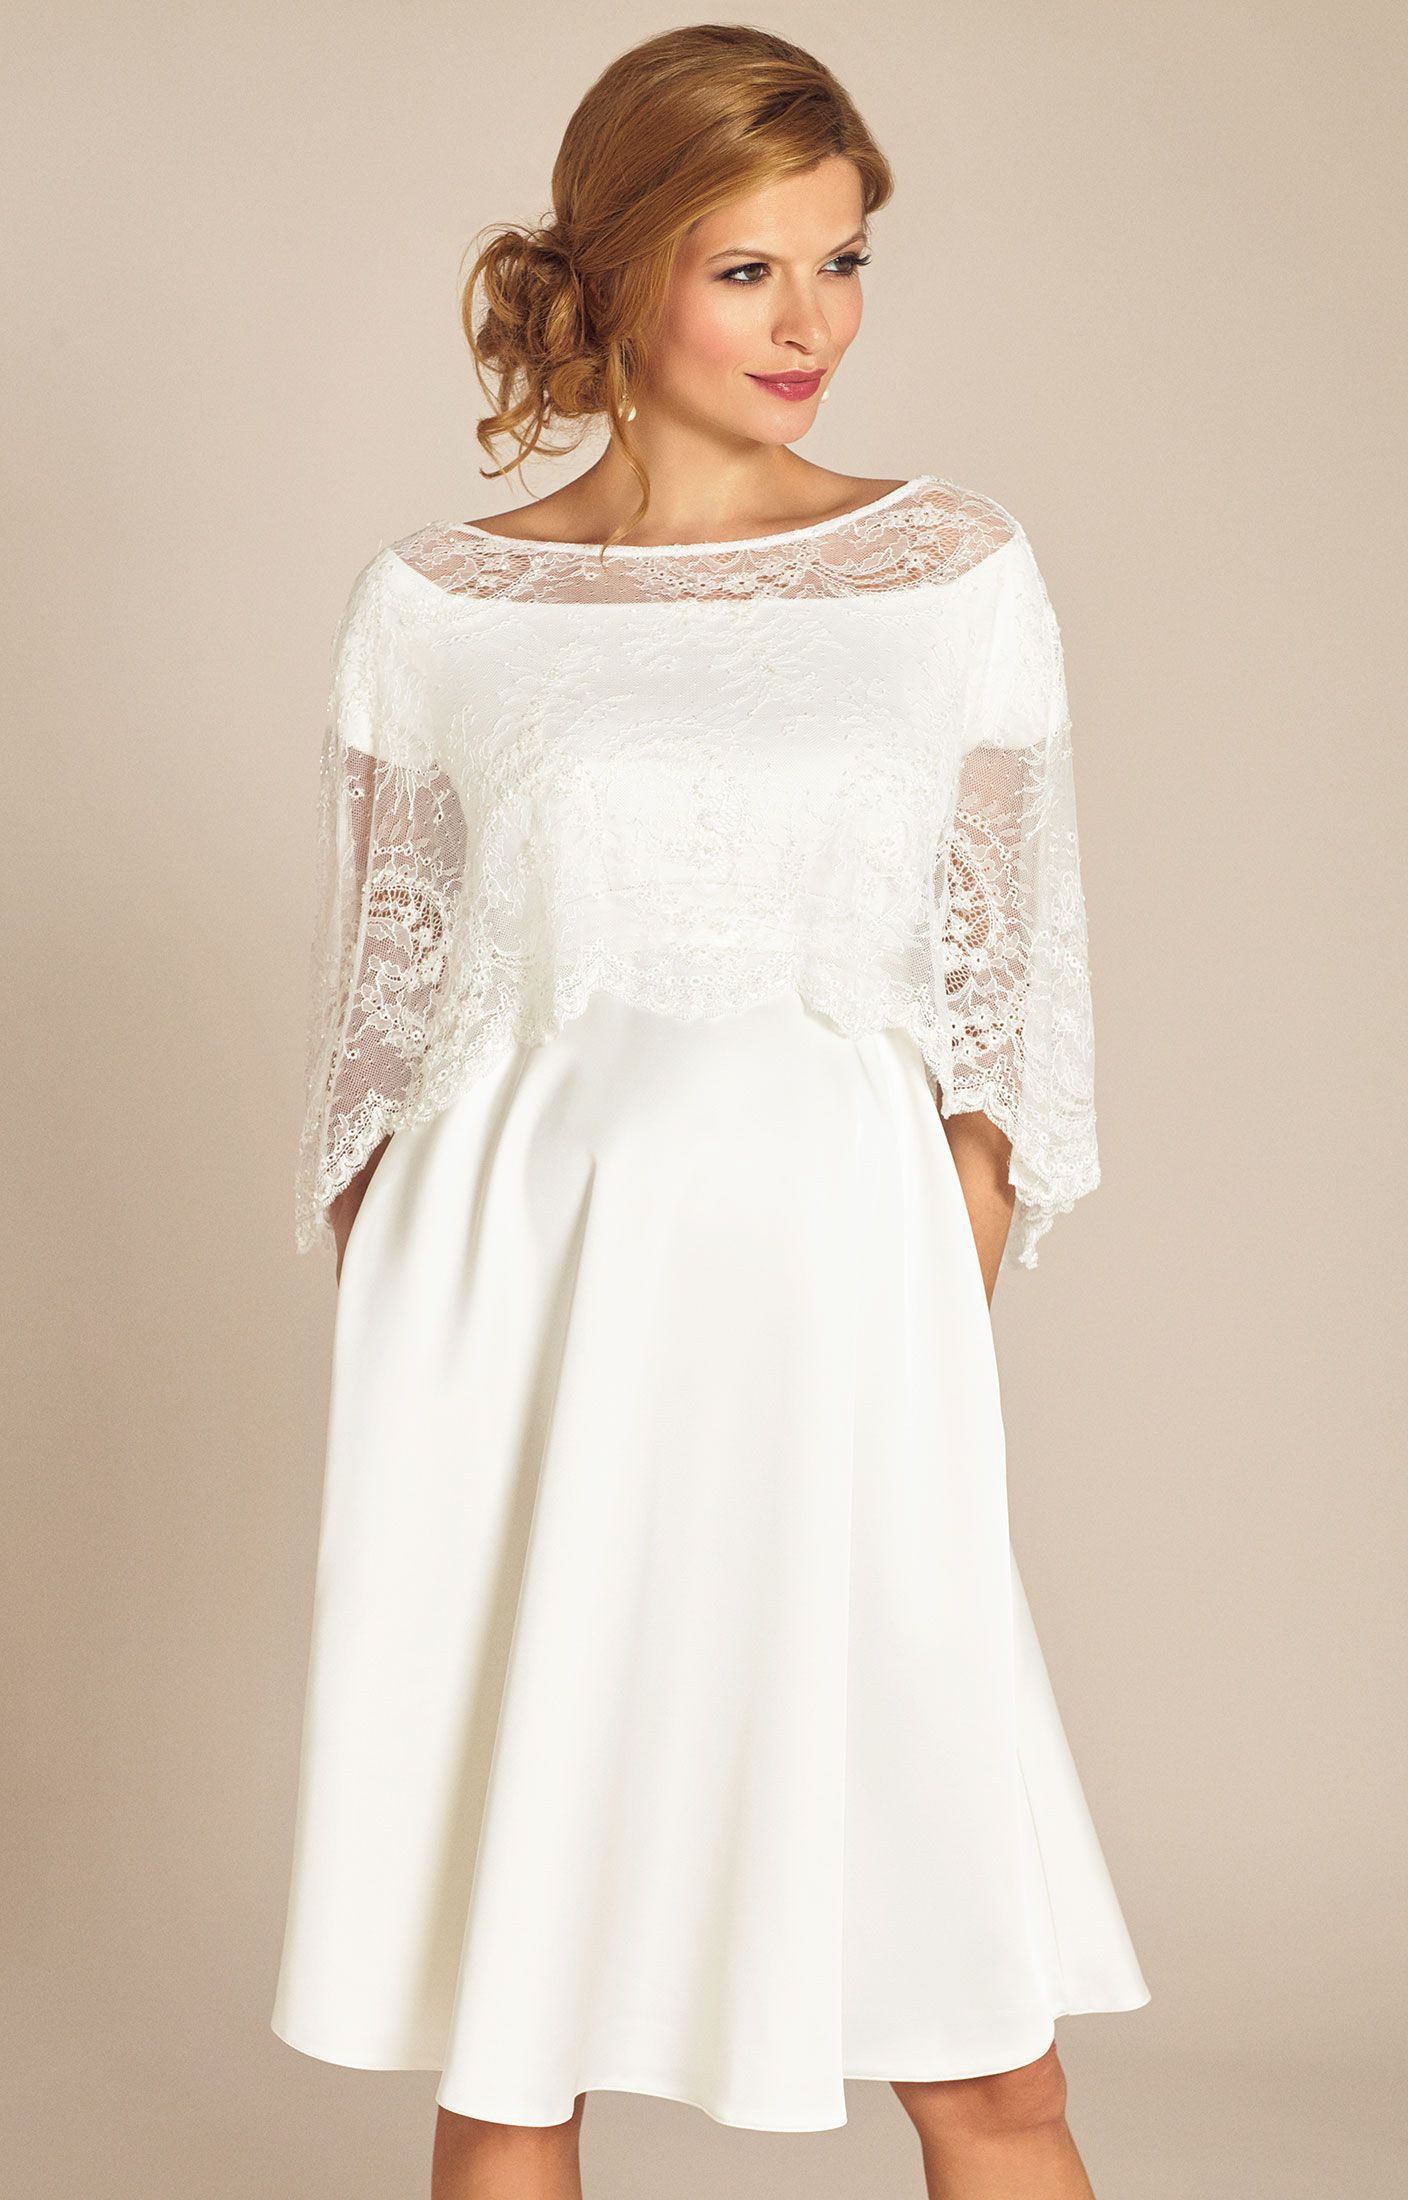 32+ Wedding dress with capelet information